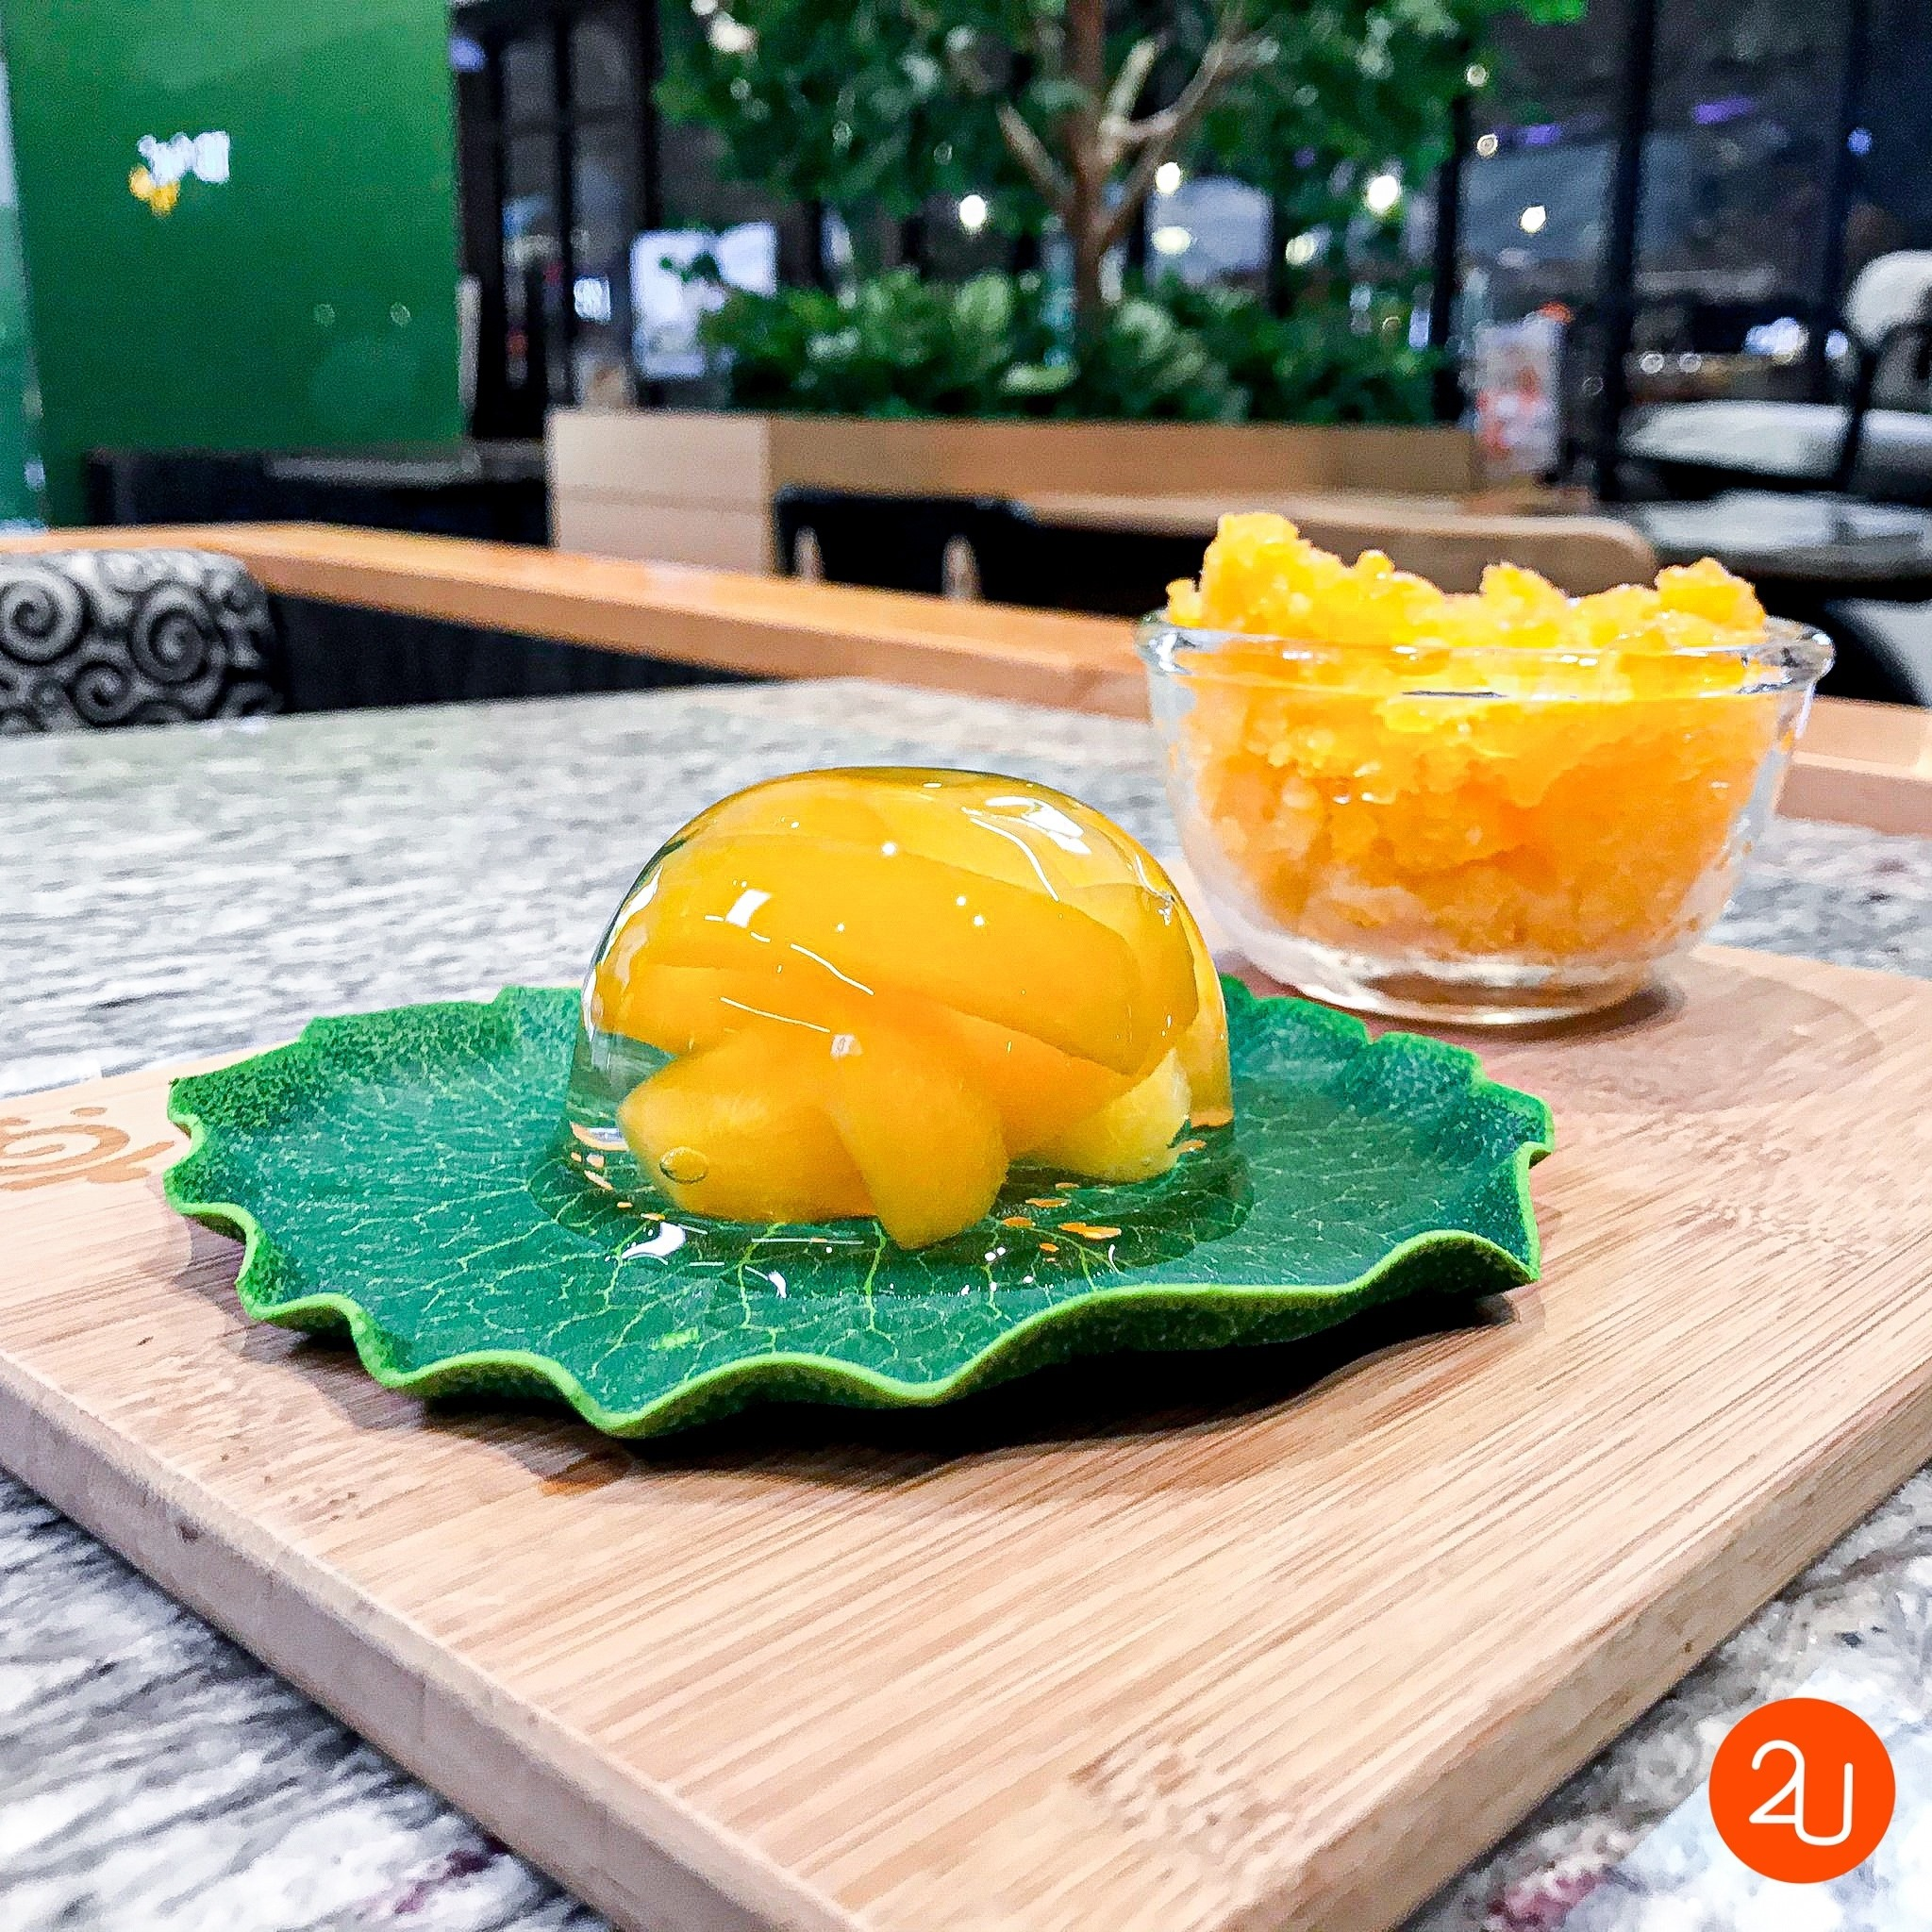 Marian Plum Raindrop With Refreshing Marian plum granita by Kyo Roll En